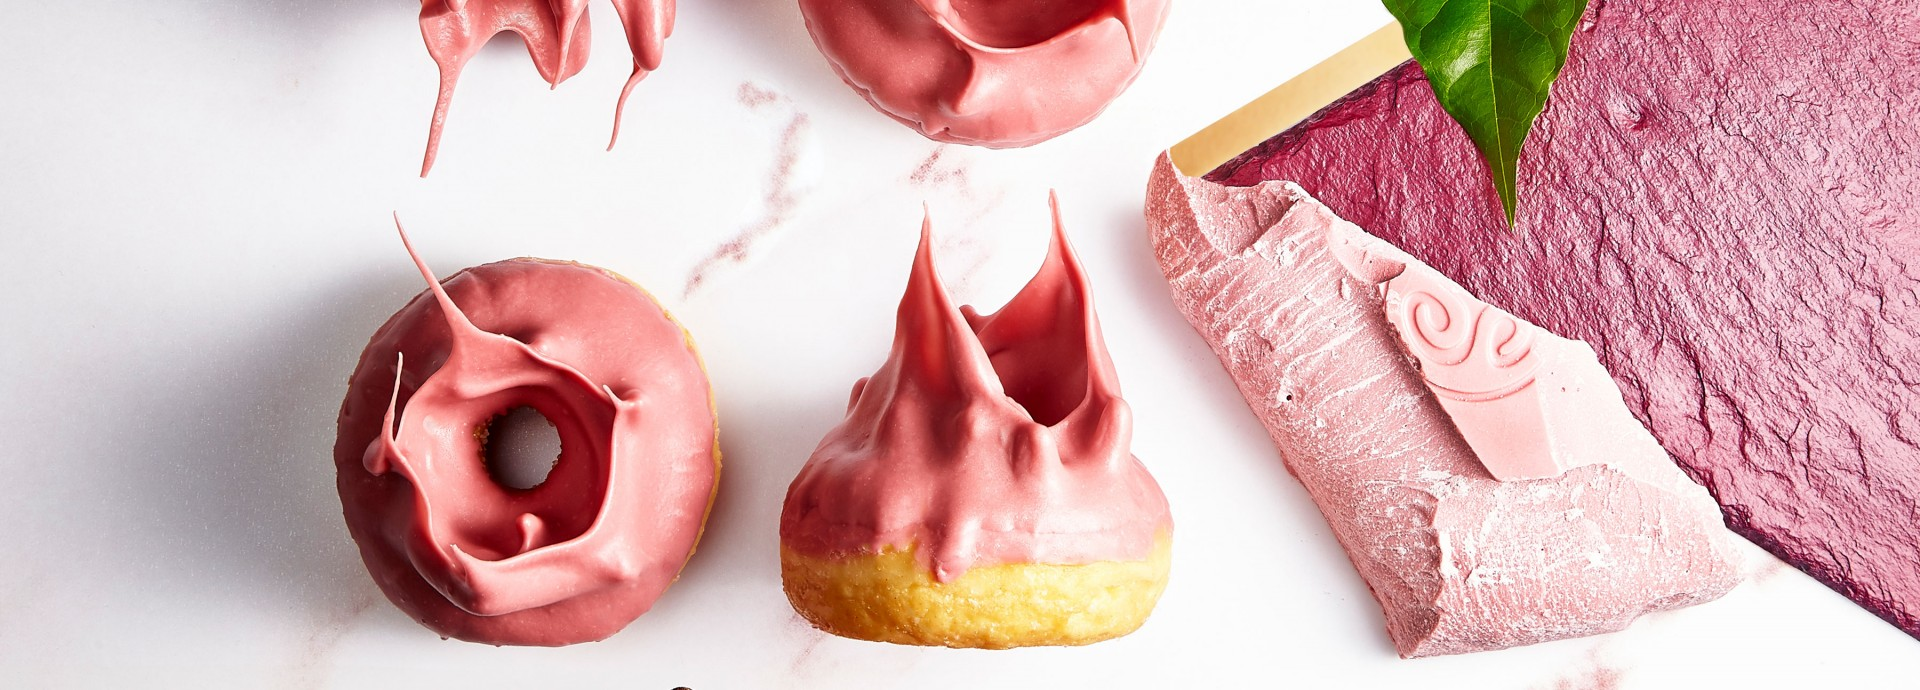 Callebaut Donuts with Ruby Frosting